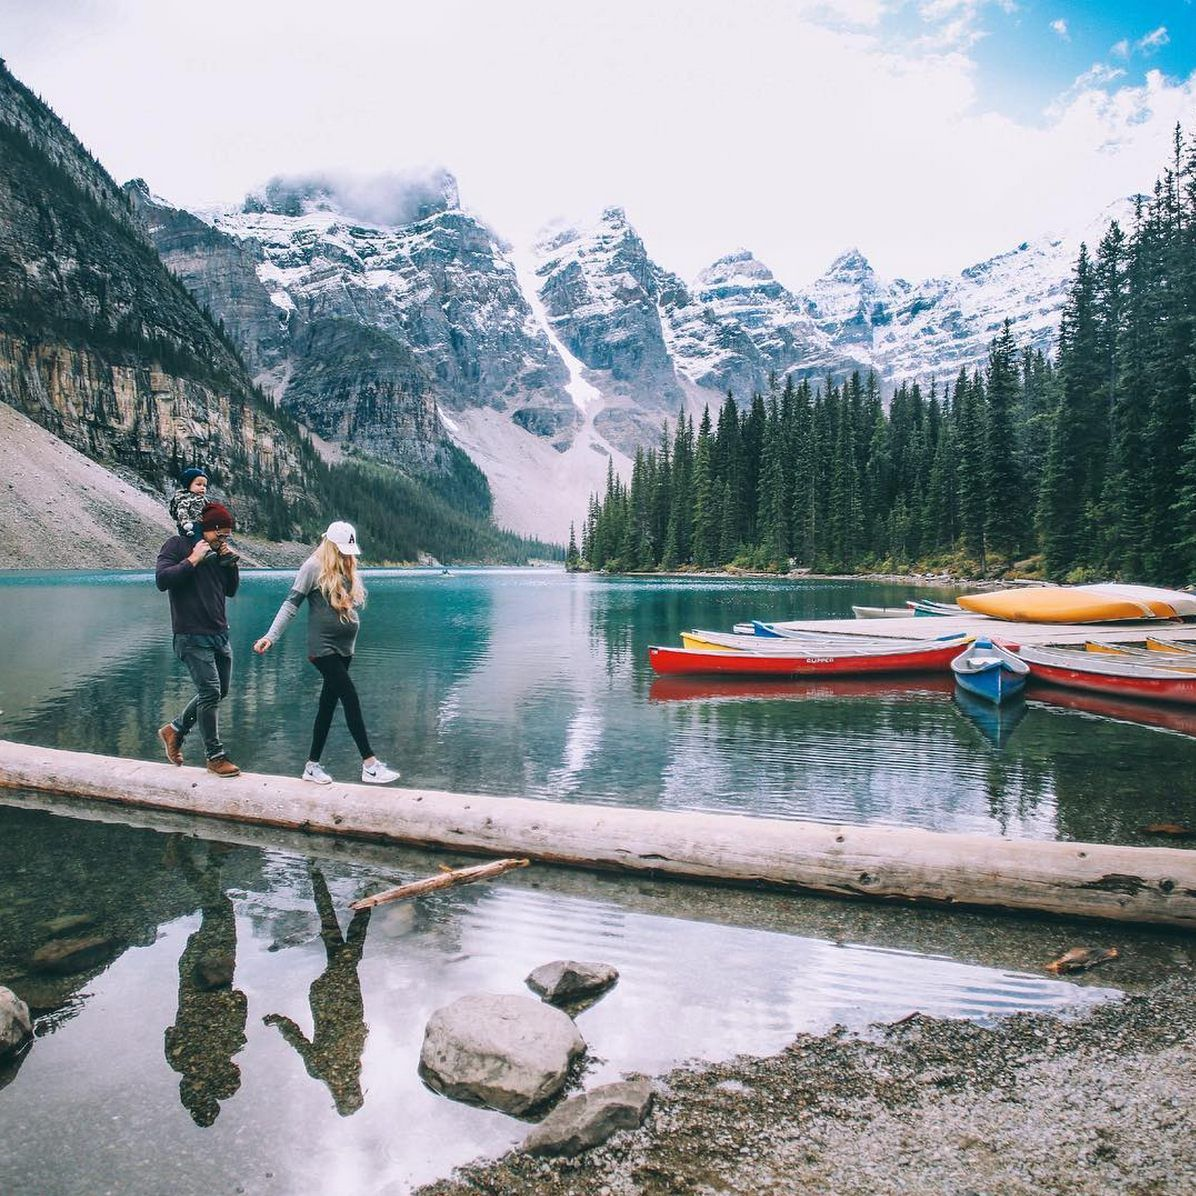 Lakes In Bc Canada: Moraine Lake - Barefoot Blonde By Amber Fillerup Clark